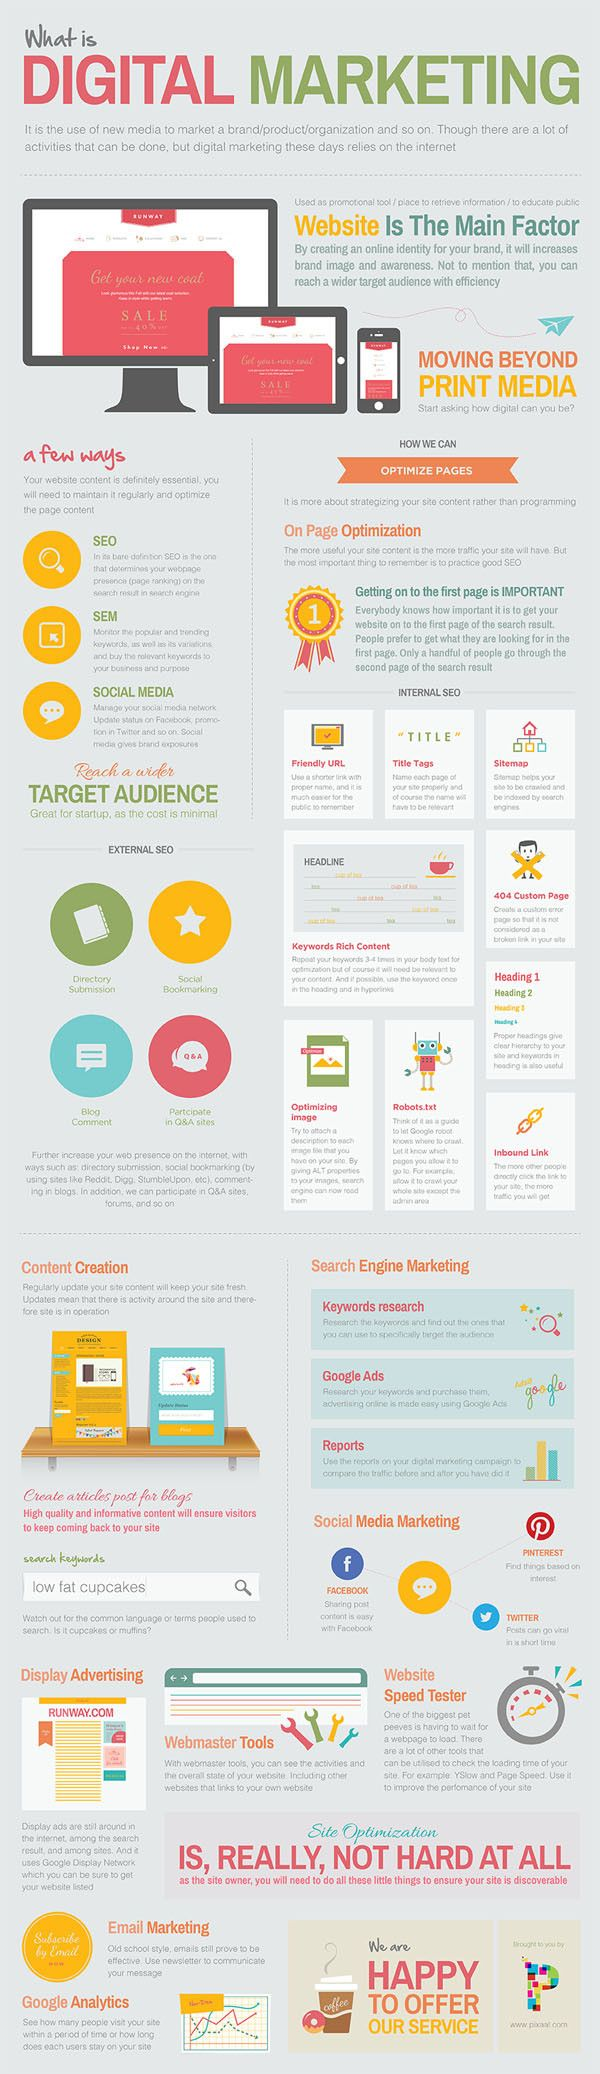 Digital marketing is the use of new media to market a brand/product/organization and so on. Though There are a lot activities that can be done, but digital marketing these days relies on internet. This infographic will make you better understanding about digital marketing.